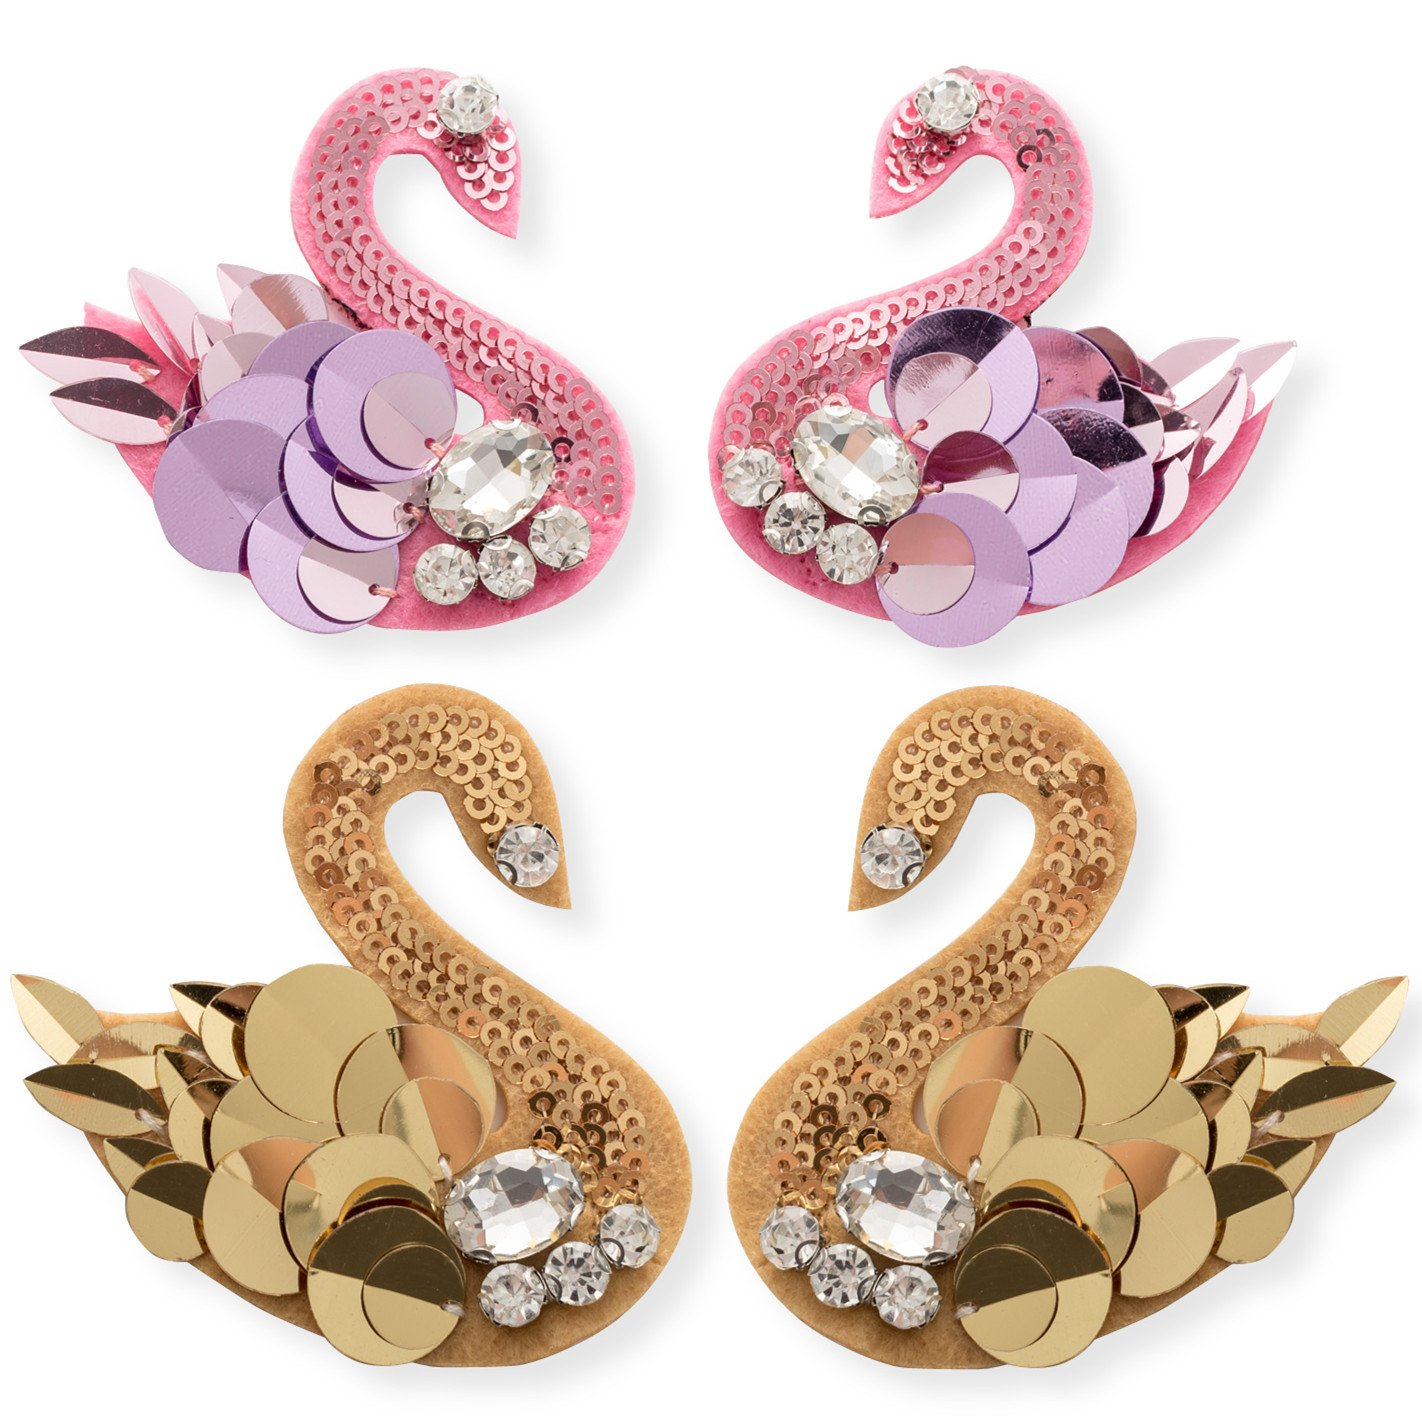 Popular Brand White Swan Sequined Patch Cloth Decoration Applique Embroidered Patch Sewing Accessories Apparel Sewing & Fabric Patches